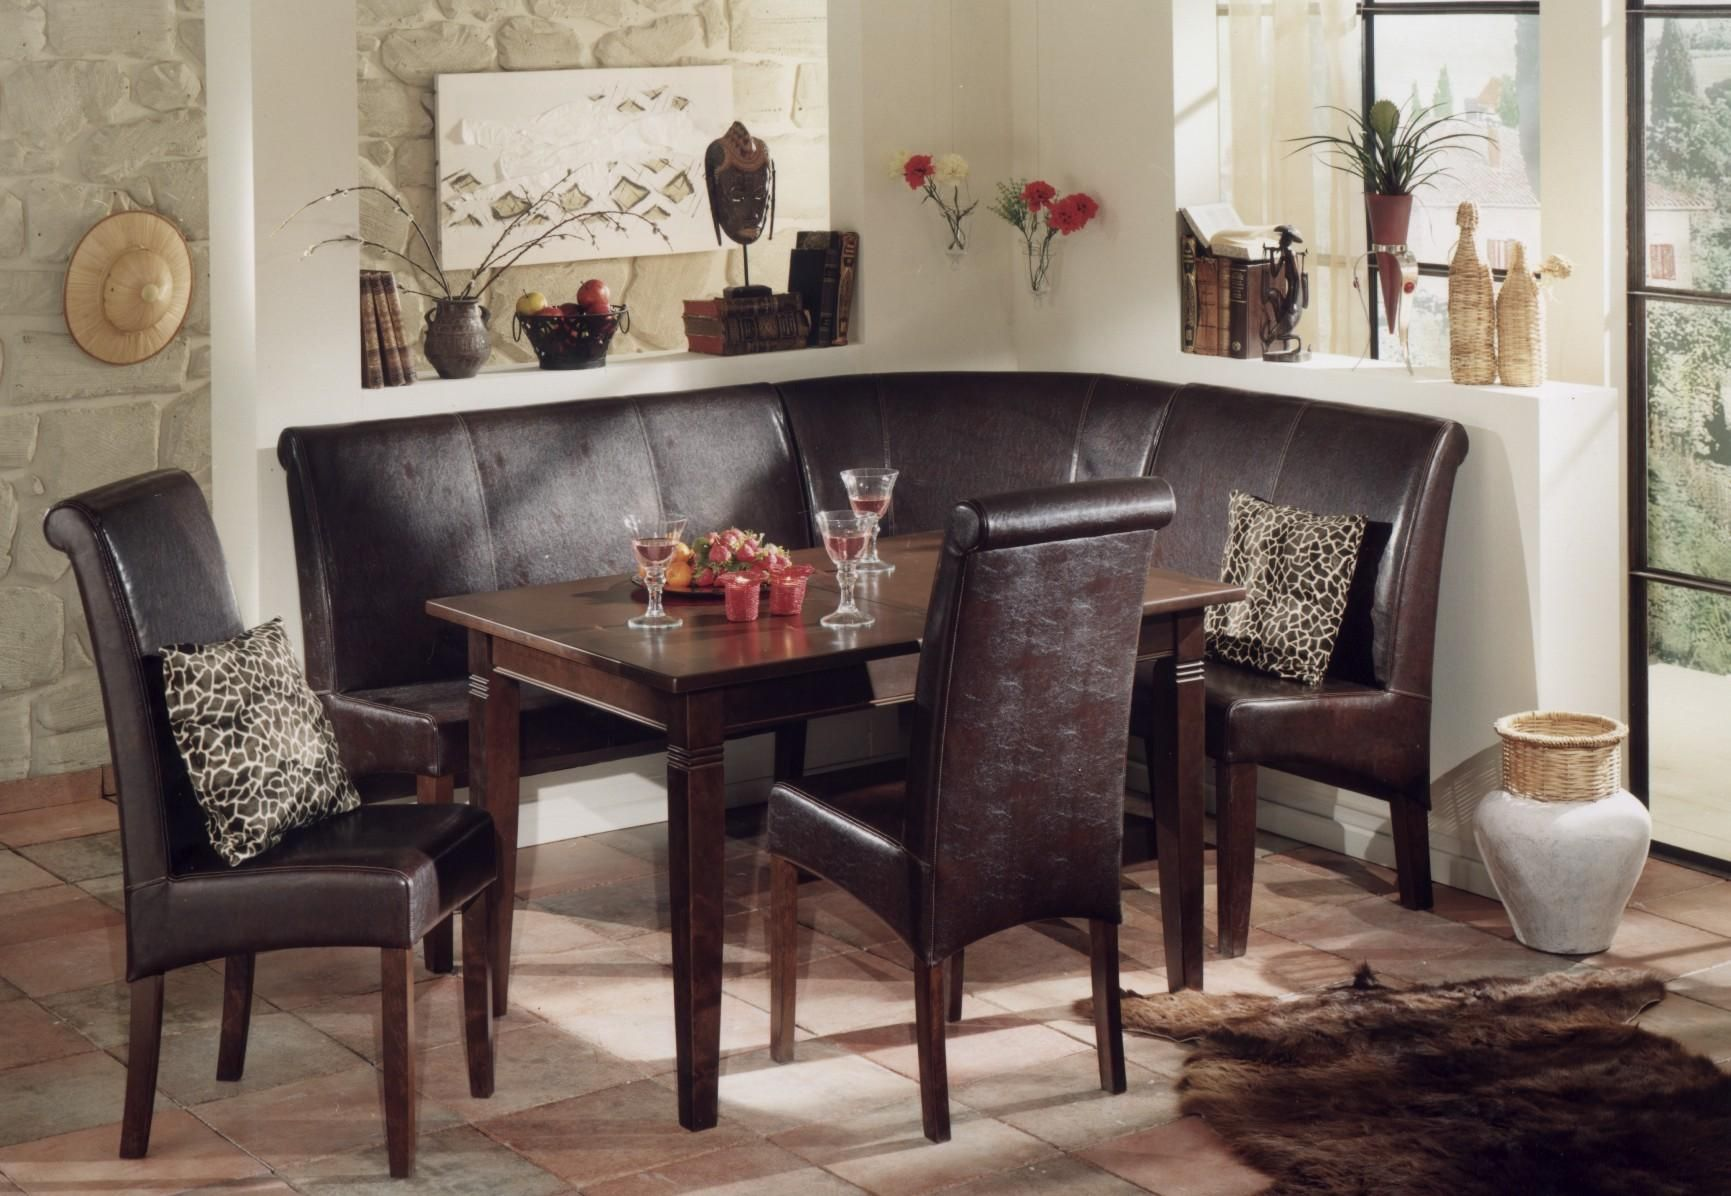 The Design Draws On The Corner Booth Kitchen Table In 2020 Dining Room Small Corner Bench Dining Table Corner Dining Set